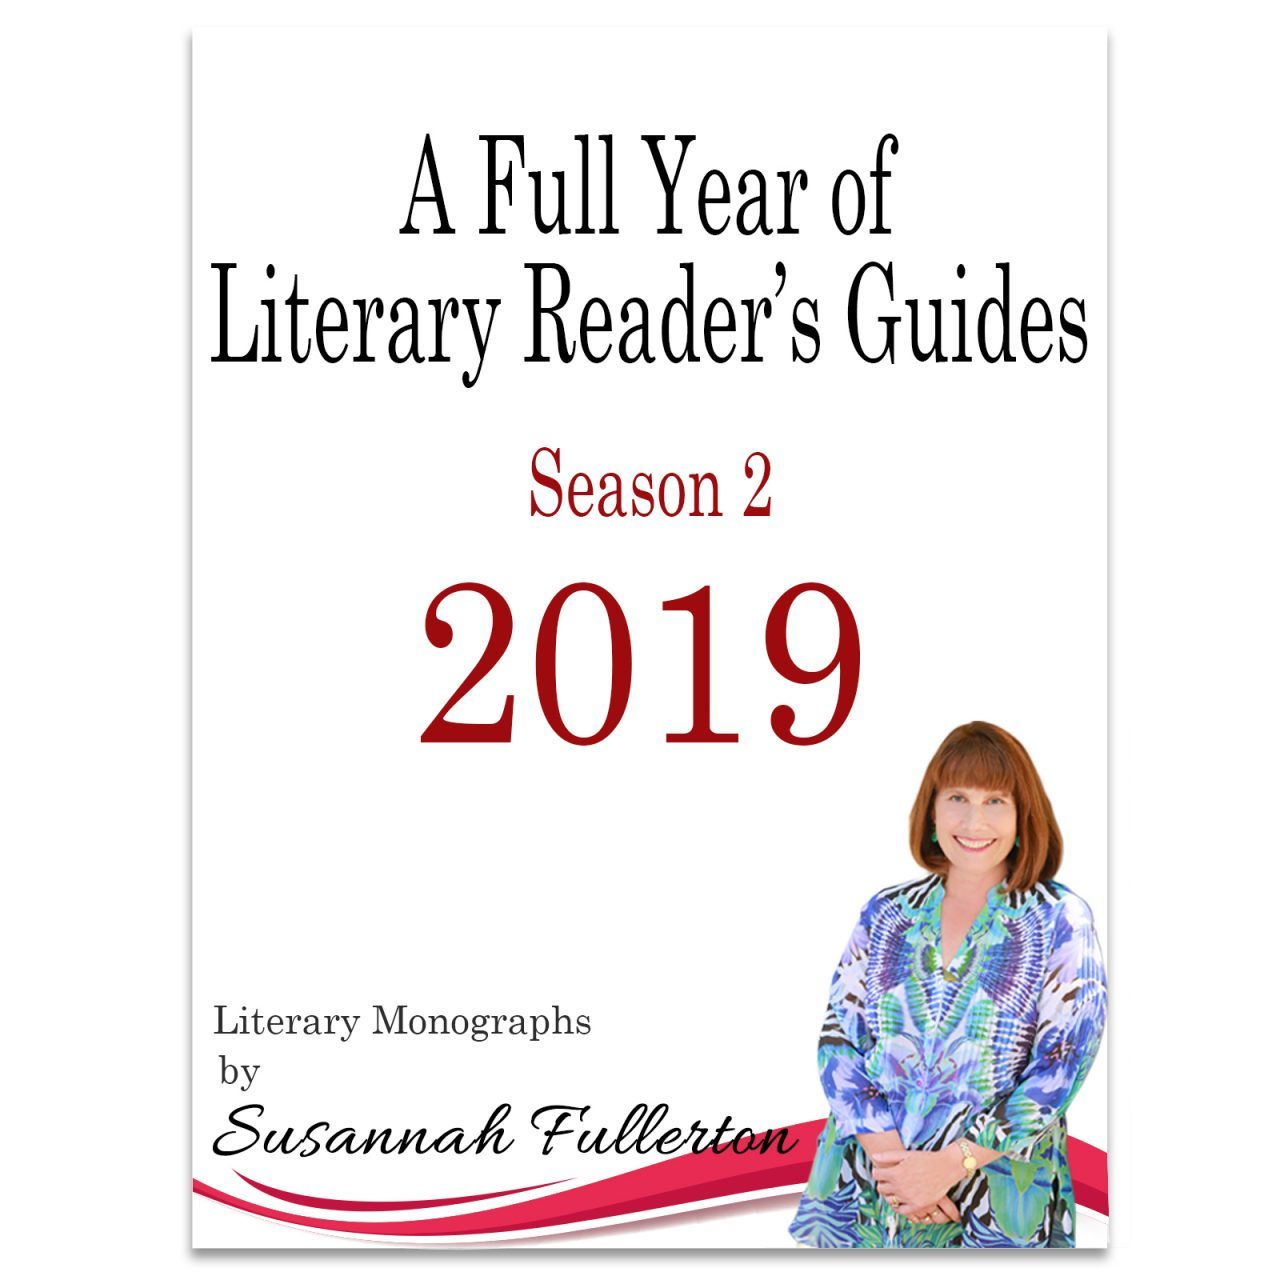 A Full Year of Literary Reader's Guides Season 2